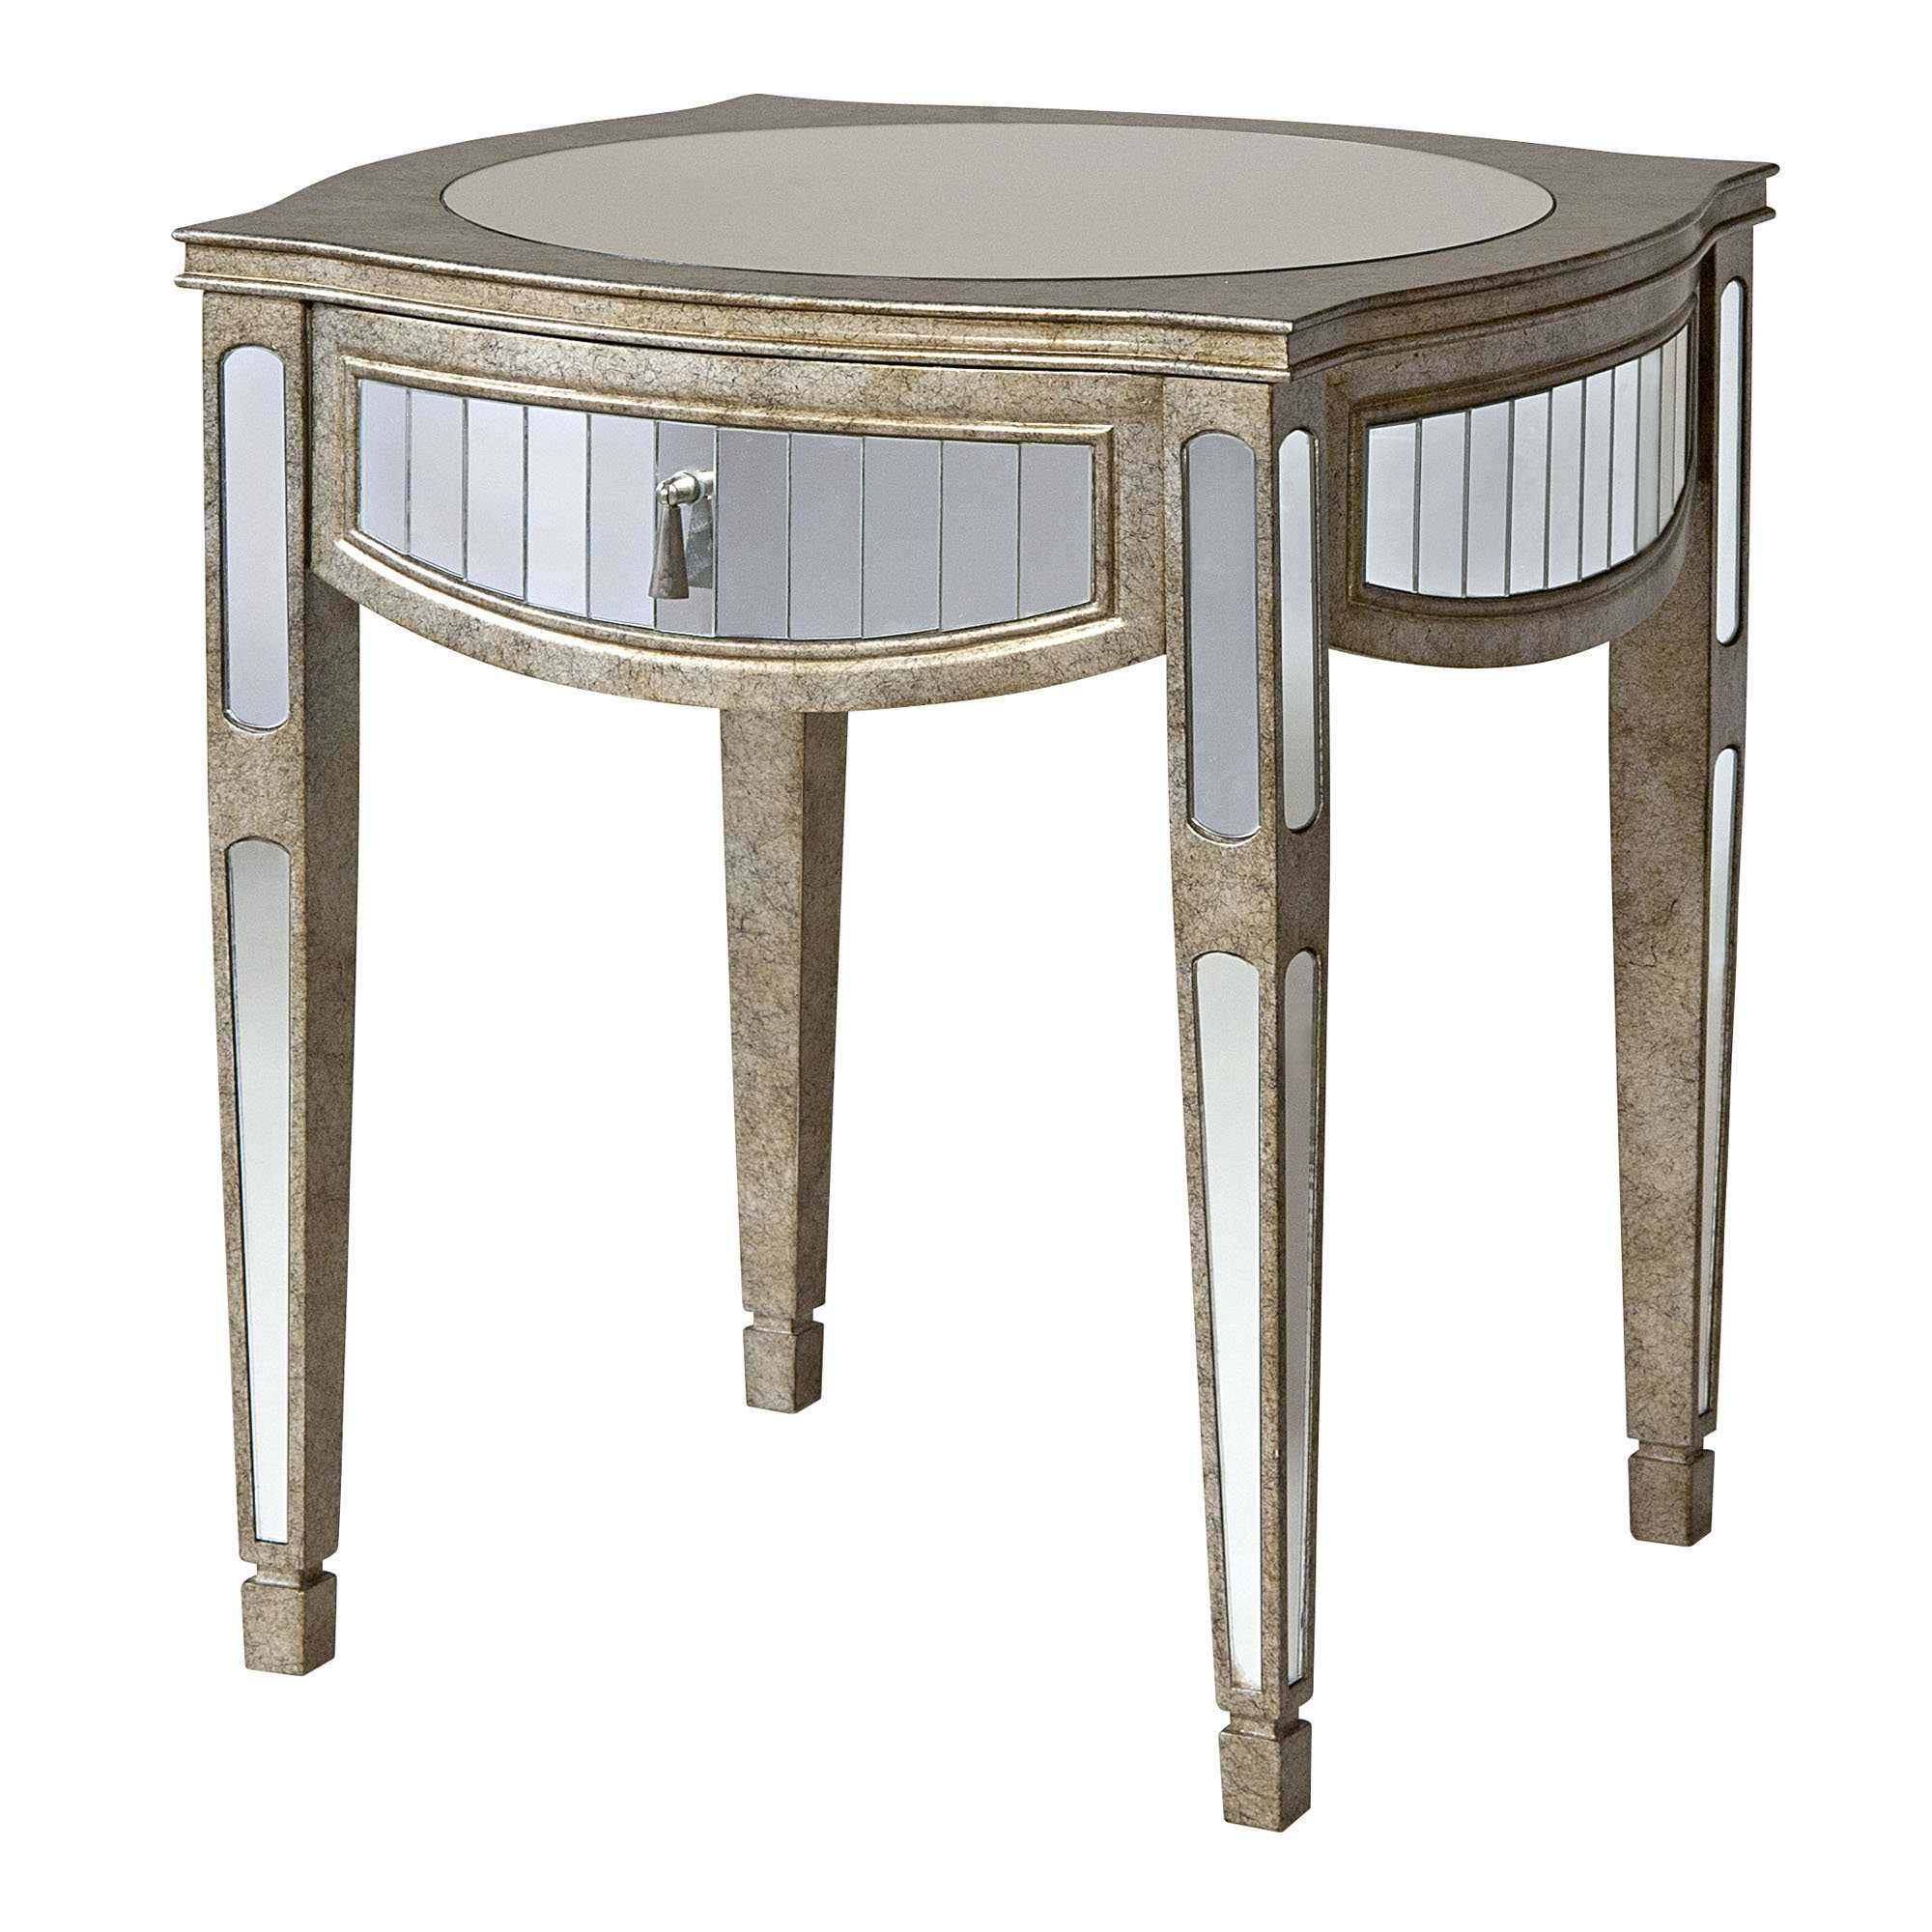 mirrored accent table with ideas and fabulous gold side tures round mirror neoteric design drawer decorating counter height kitchen storage sets tall lamps for bedroom end tables